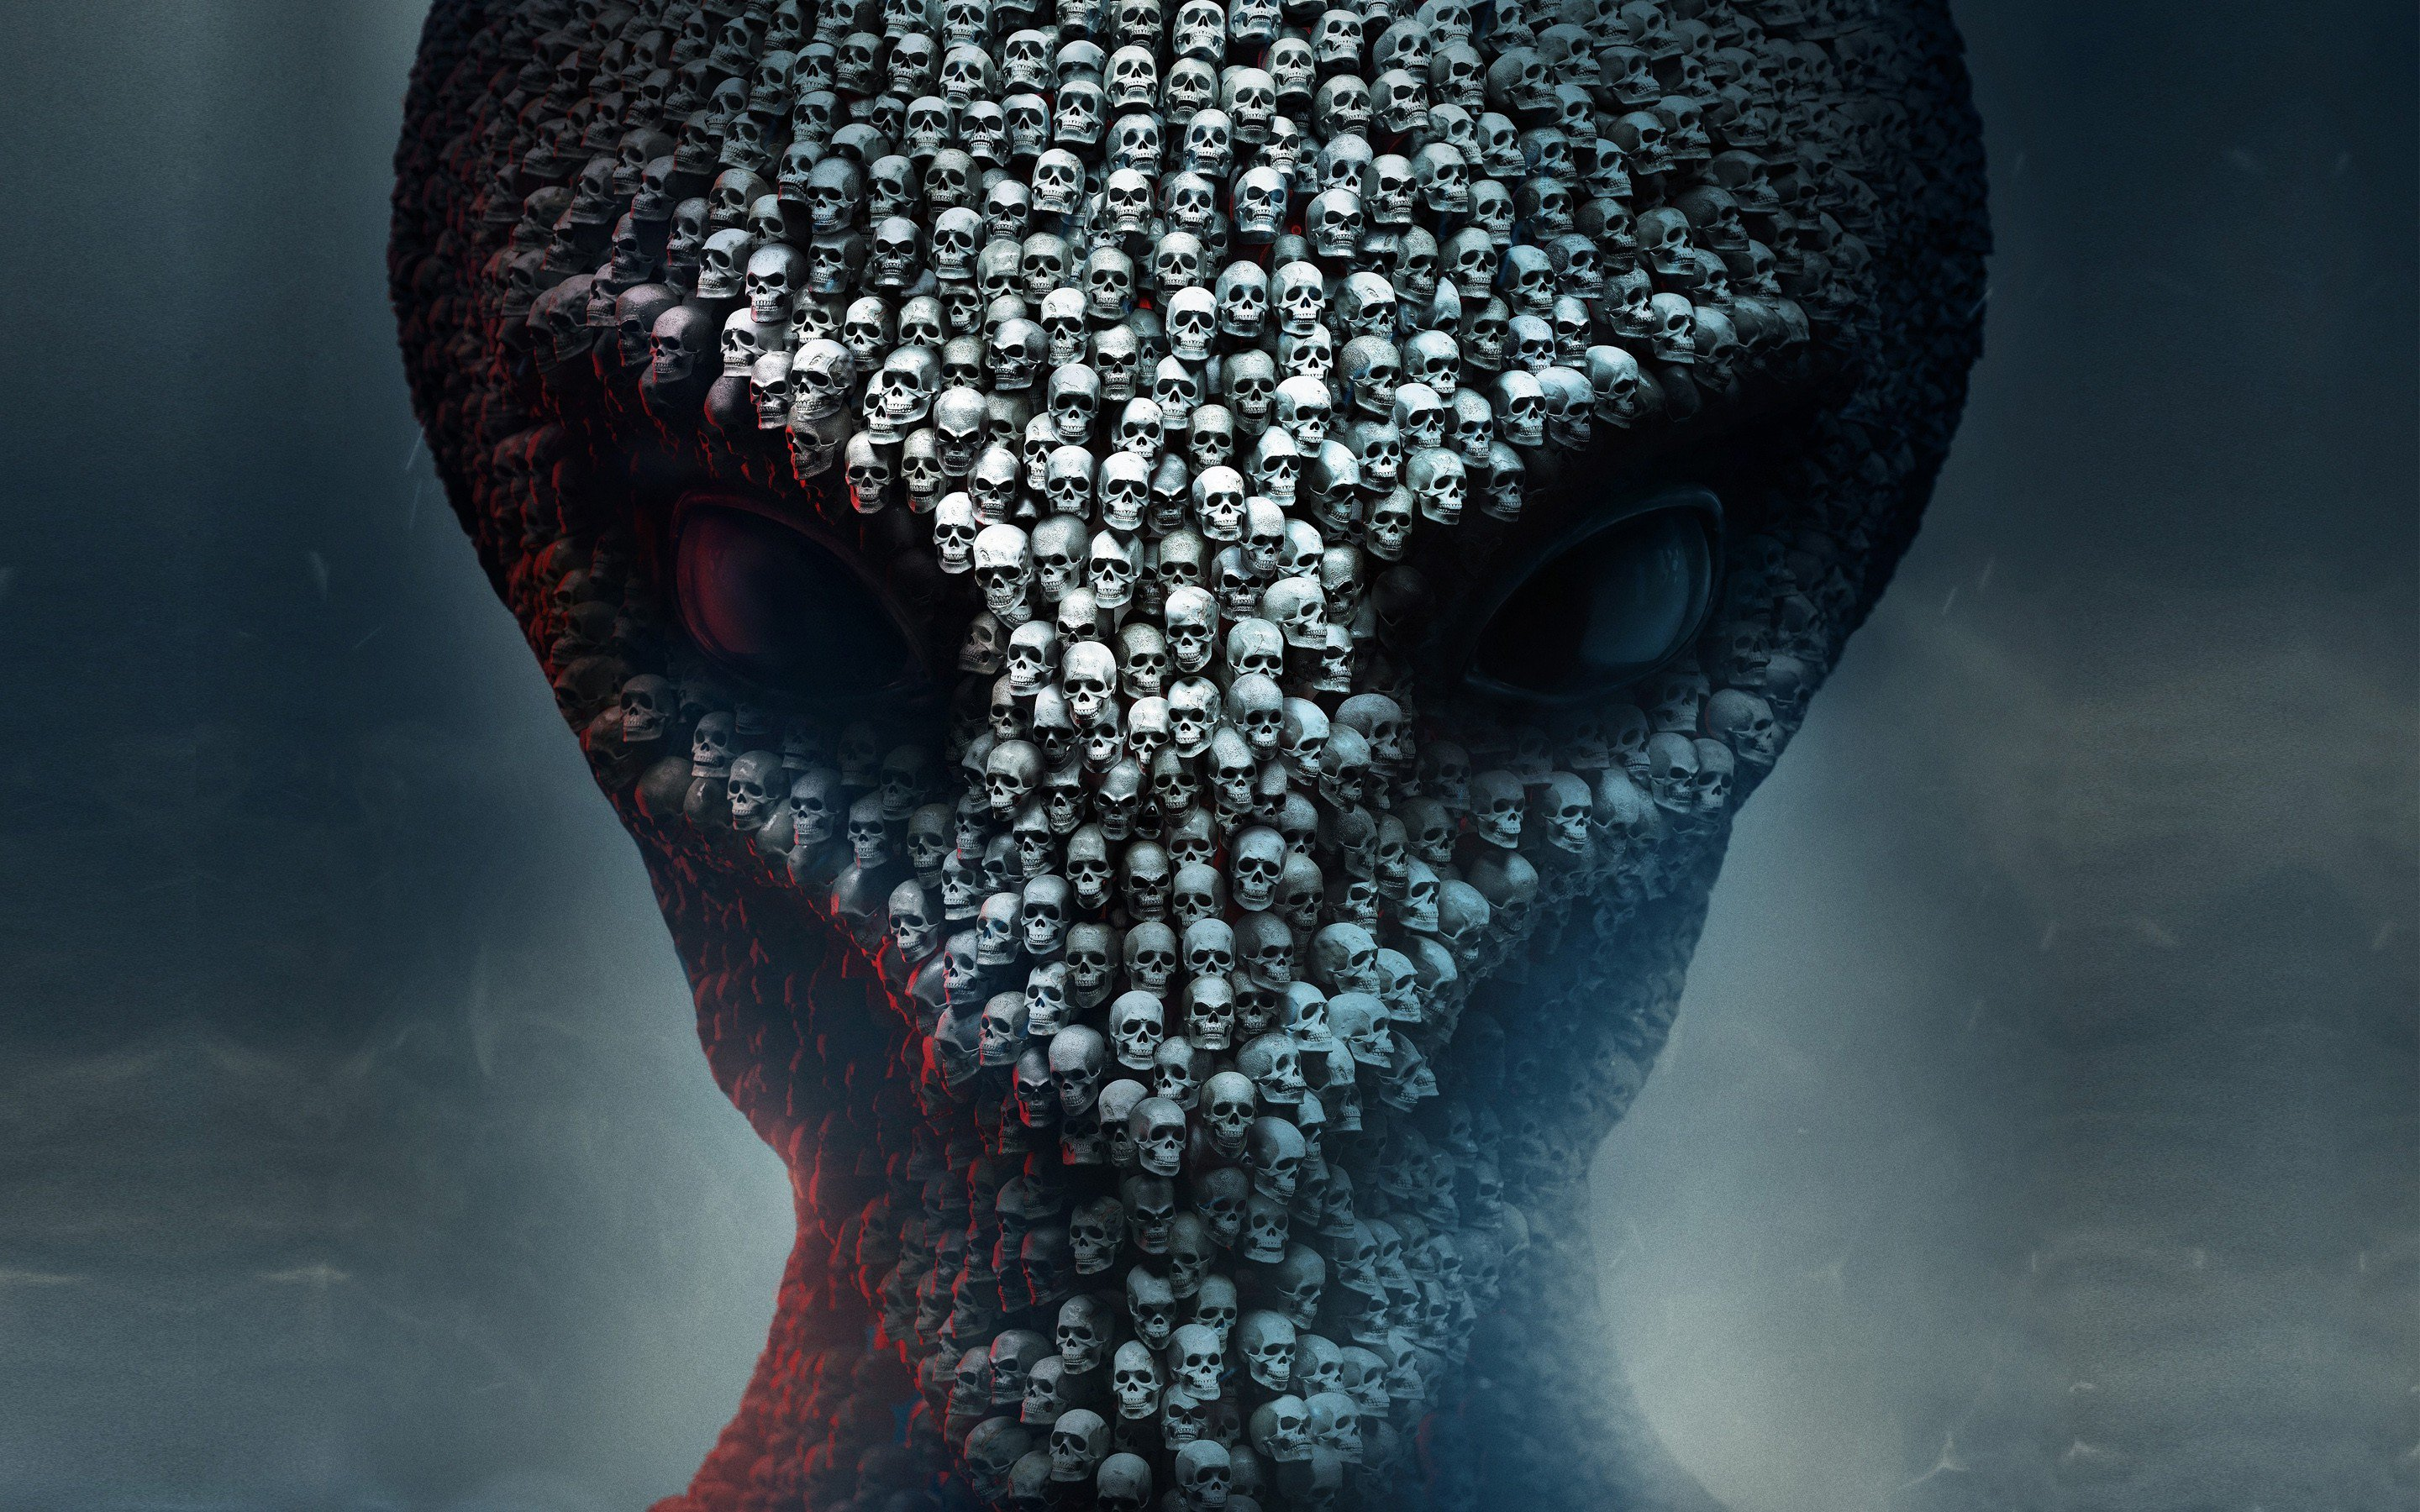 Cute Ipod Wallpapers For Walls 320x240 Xcom 2 4k Game Apple Iphone Ipod Touch Galaxy Ace